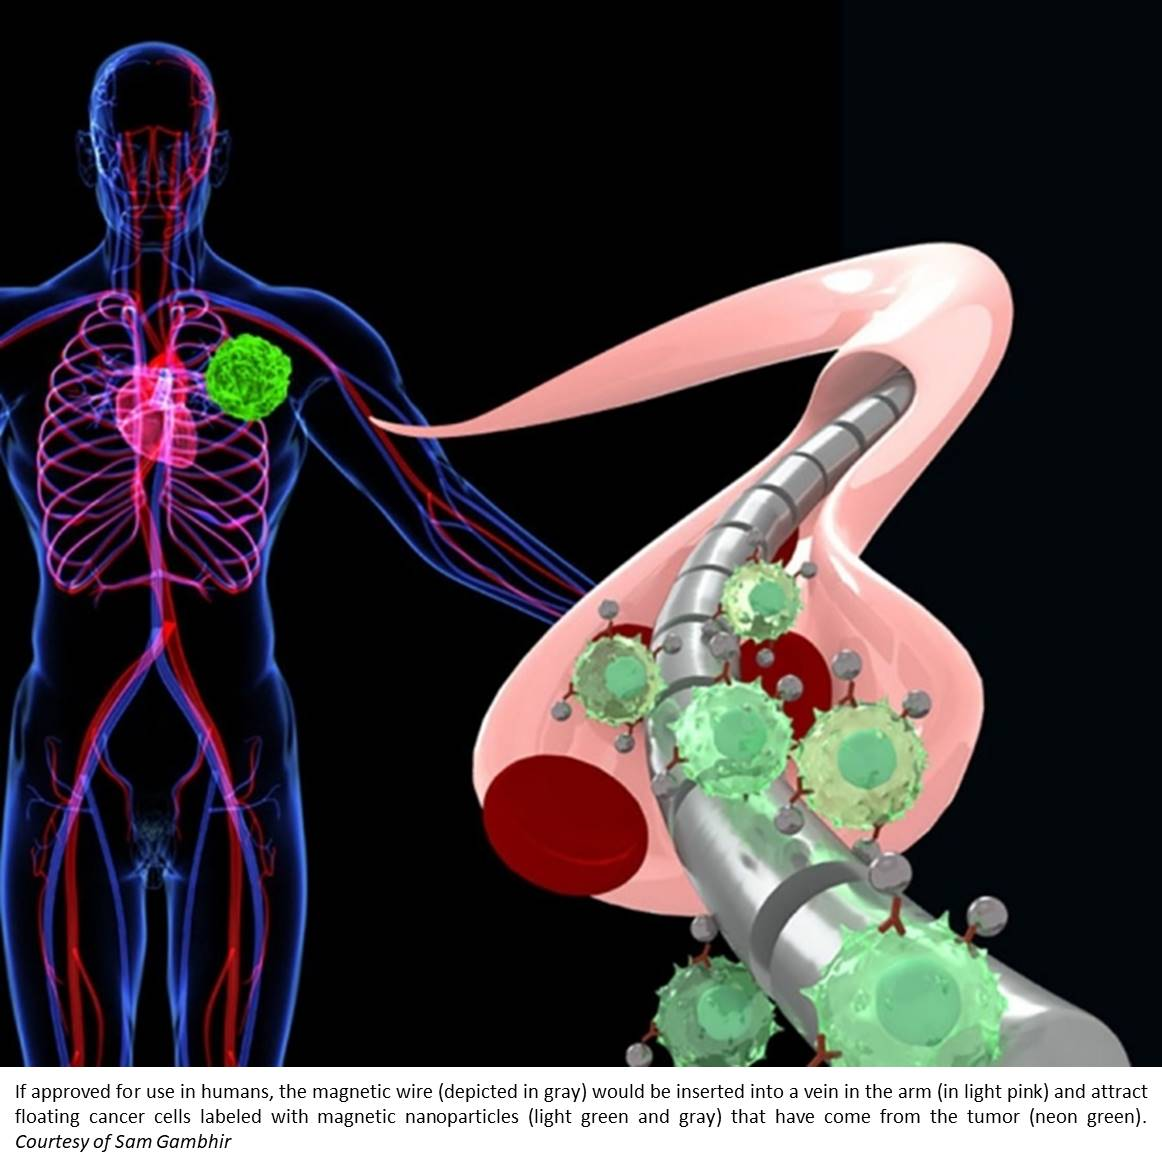 Intravenous magnetic wire to retrieve circulating tumor cells